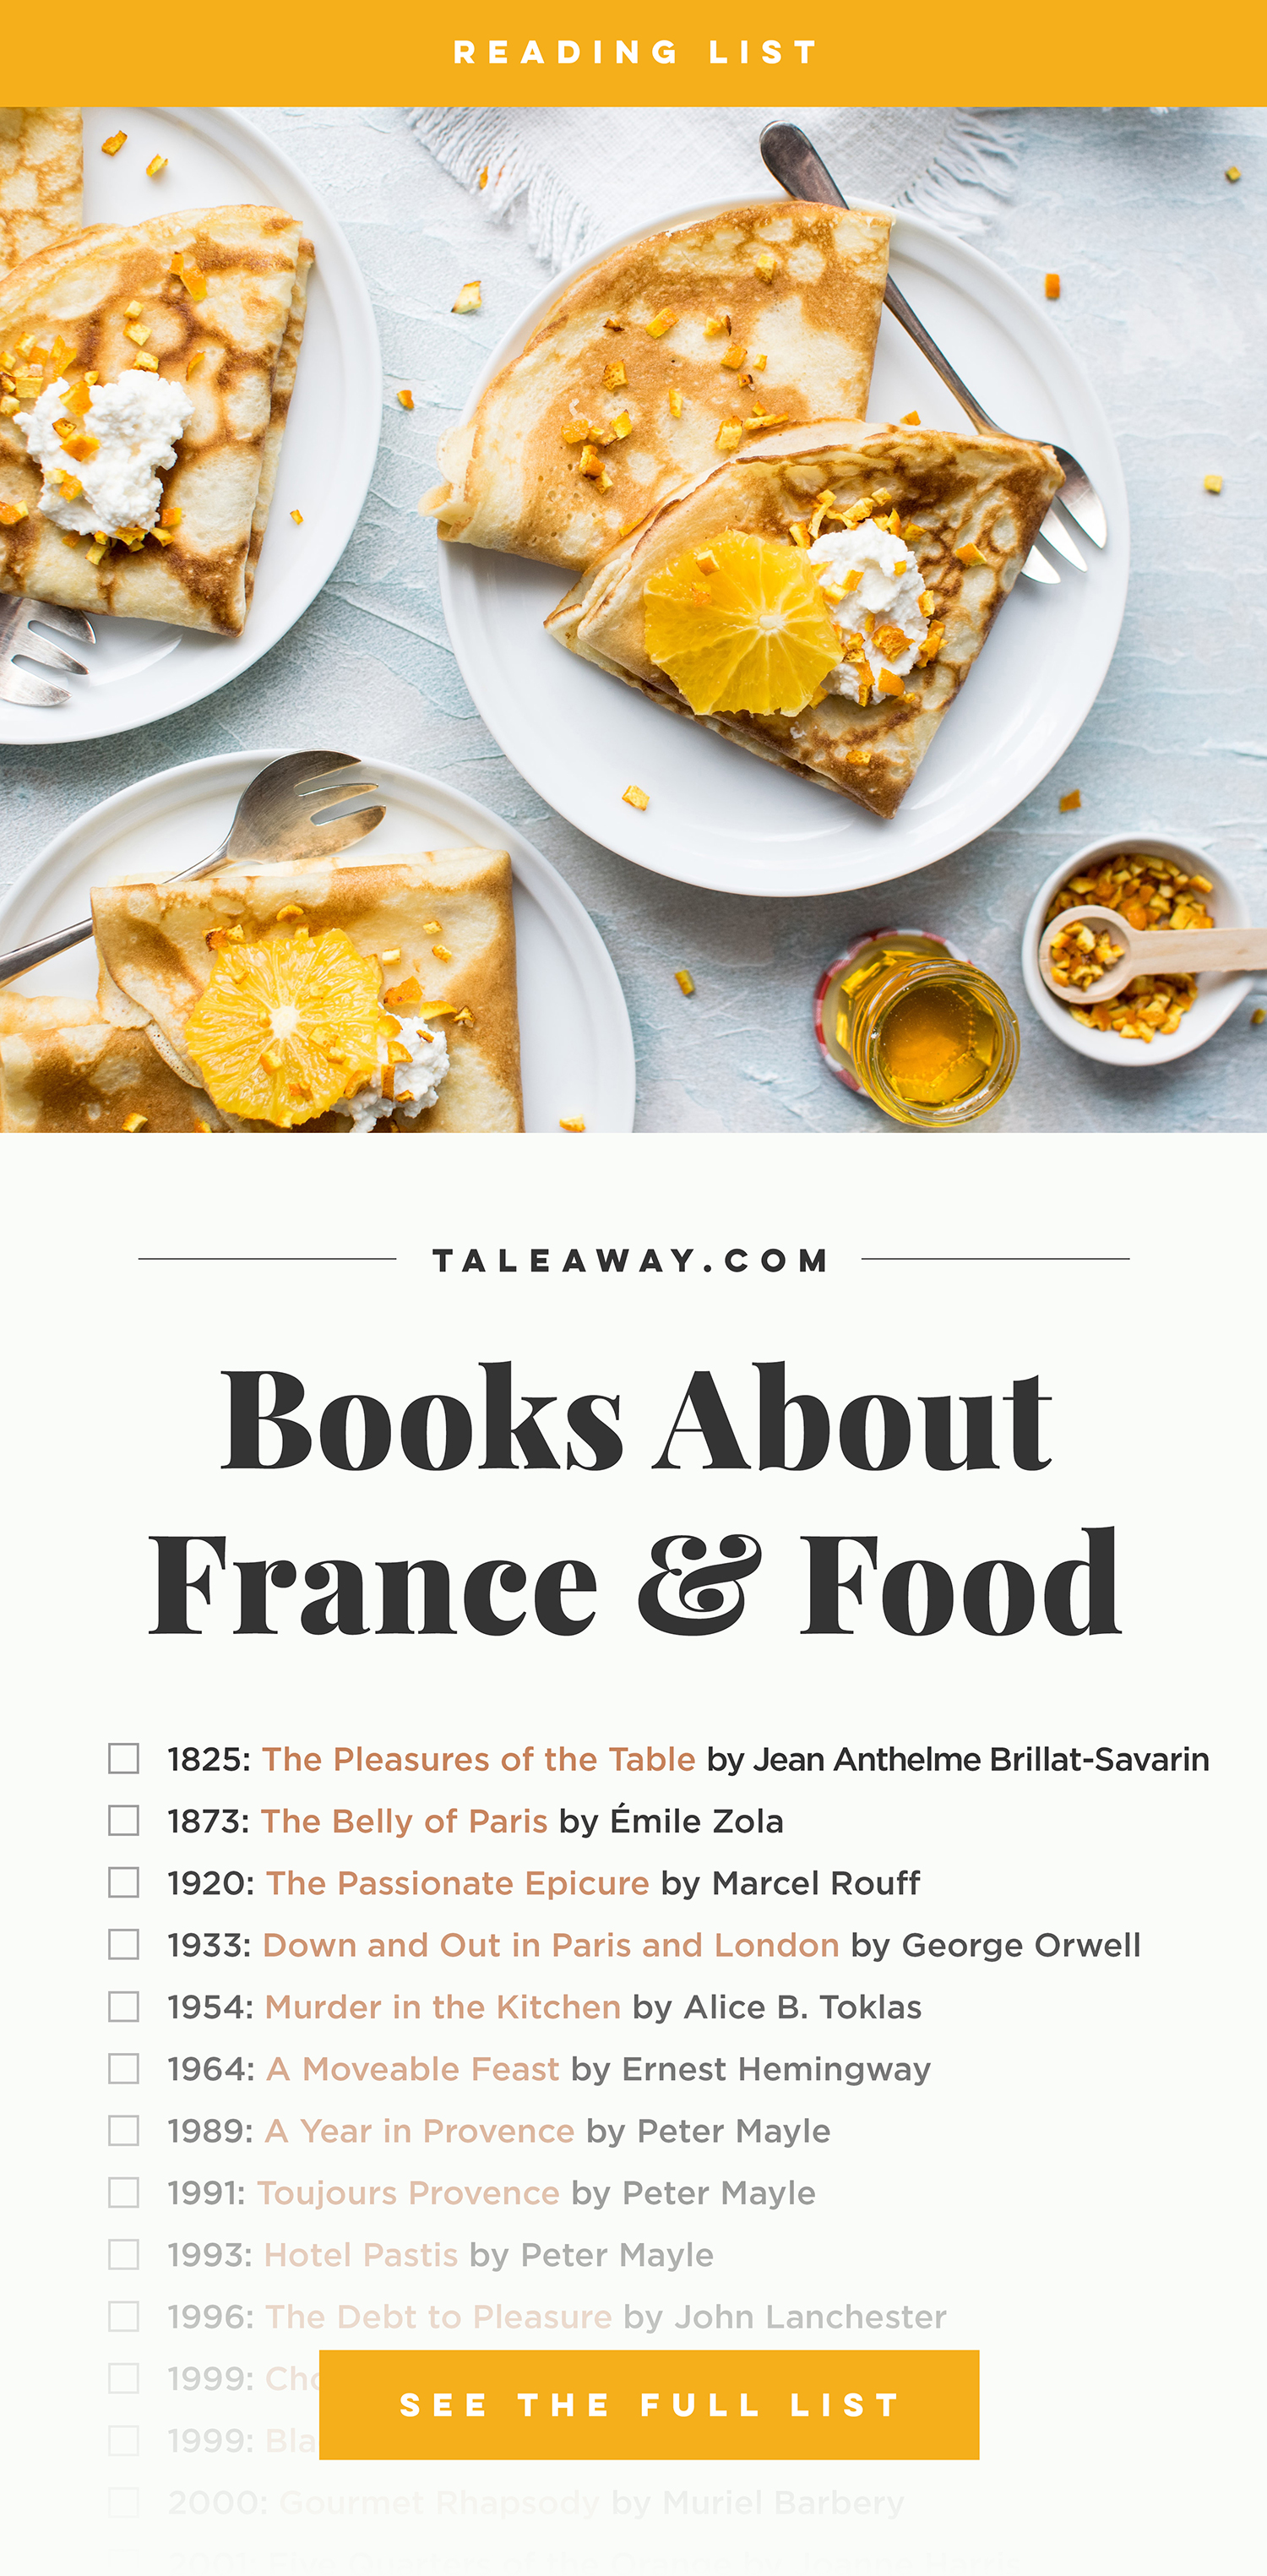 French Food Fiction: Books Around France for Food Lovers. french food books, france food fiction, france food, food novels, food fiction, best food books, books with food, novels about food, books for food lovers, food in literature, books set in france, france reading challenge, france books, france novels, france fiction, france travel, france vacation, books about france, books for foodies, gifts for foodies, france and food, food memoirs, france reading, france reading list